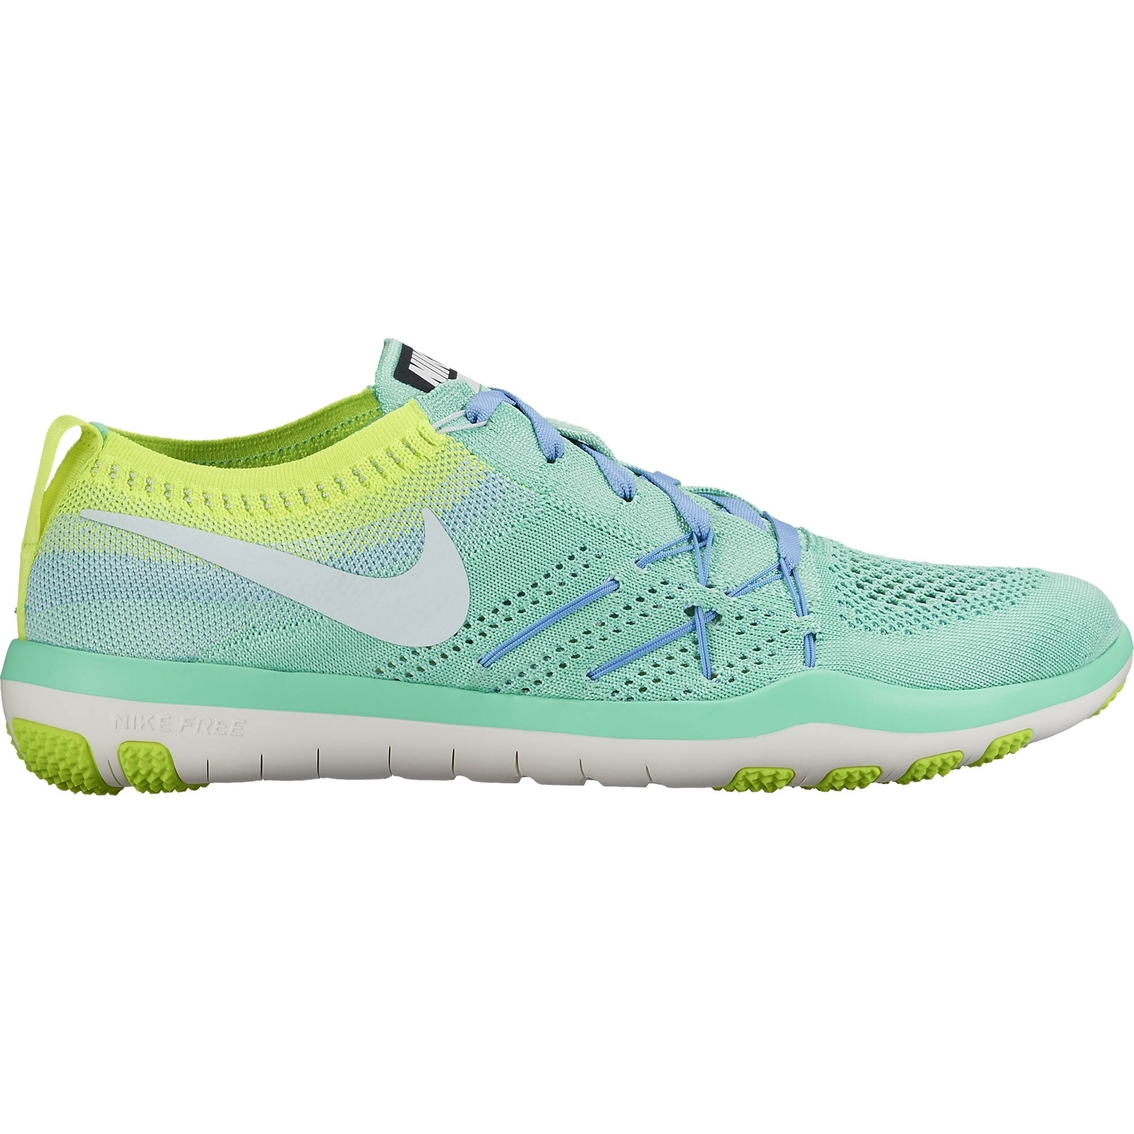 1b27e8c1755f Nike Women s Free Tr Focus Flyknit Training Shoes